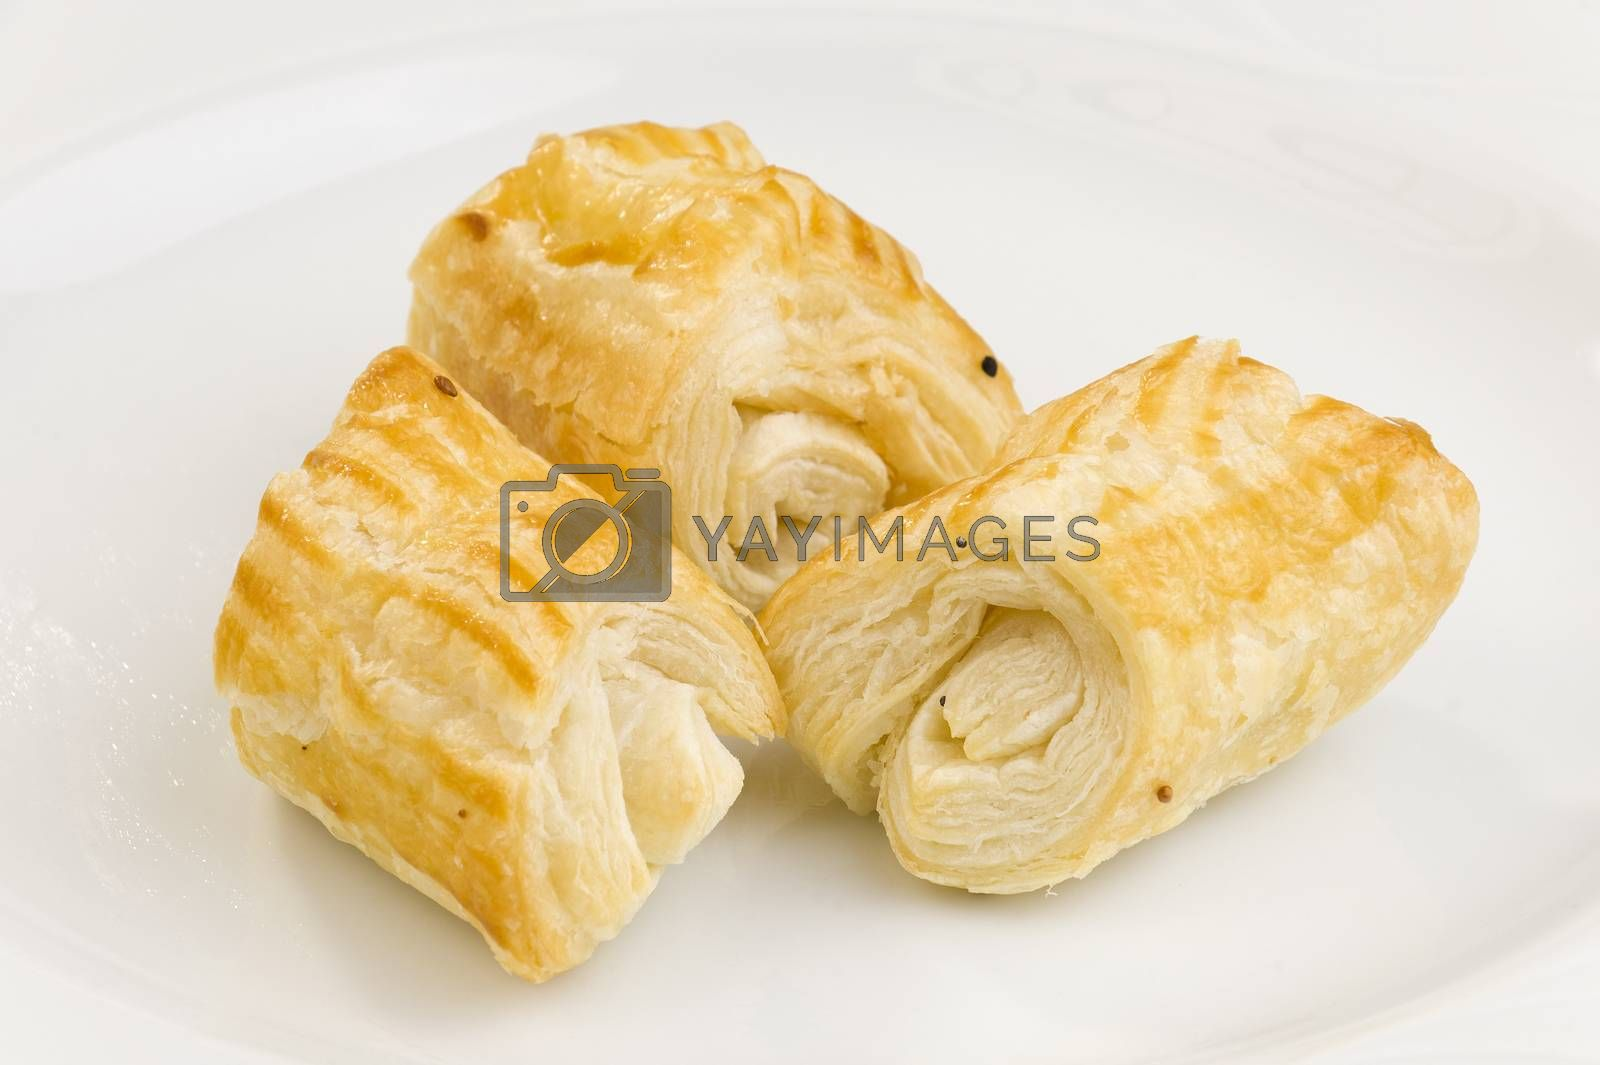 Royalty free image of Turkish Pastries by emirkoo